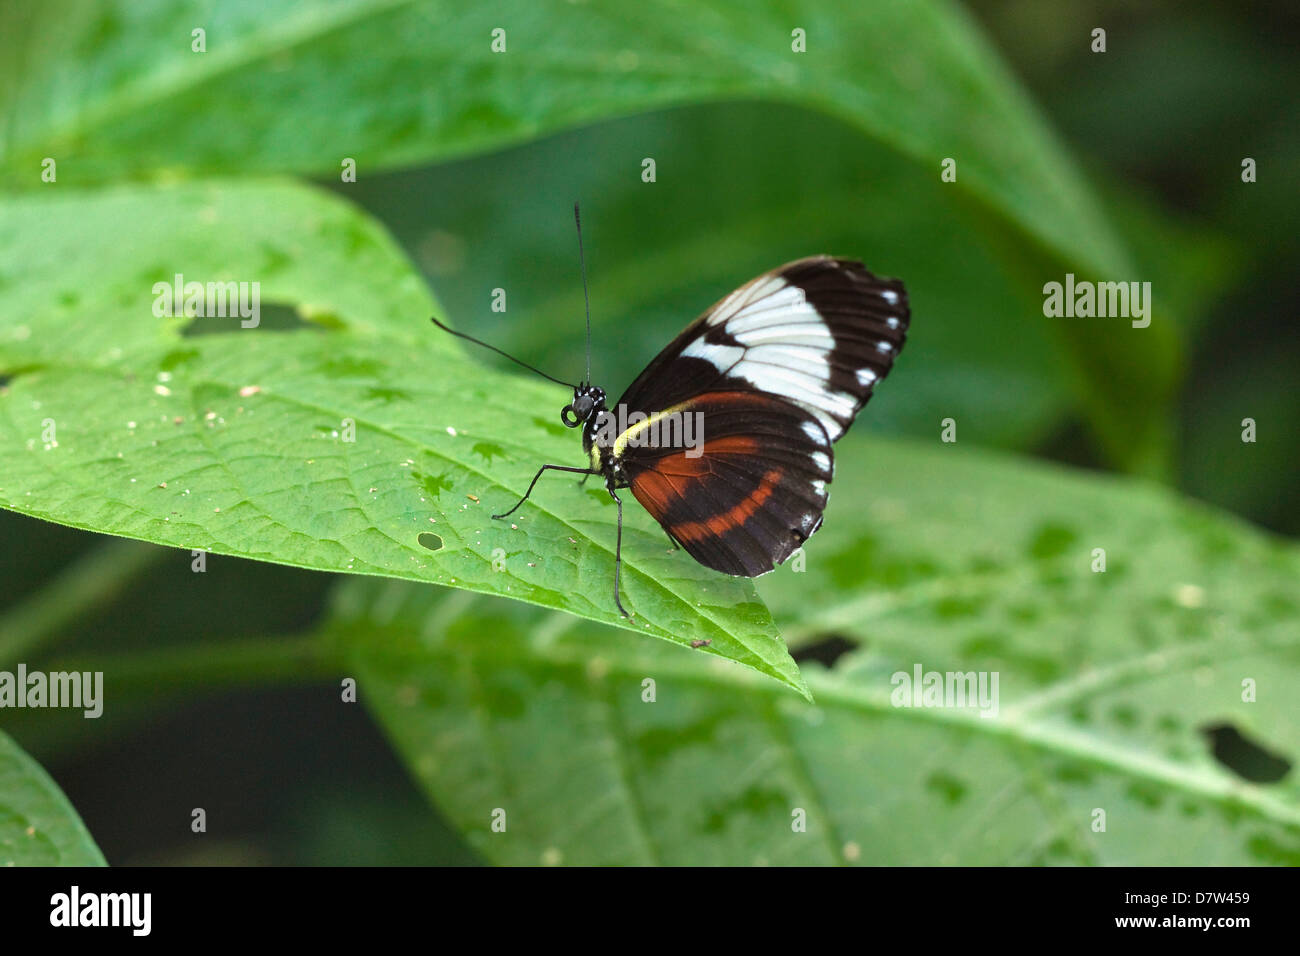 Mechanitis polymnia isthmia butterfly, a common species in Costa Rica; Arenal, Alajuela Province, Costa Rica - Stock Image